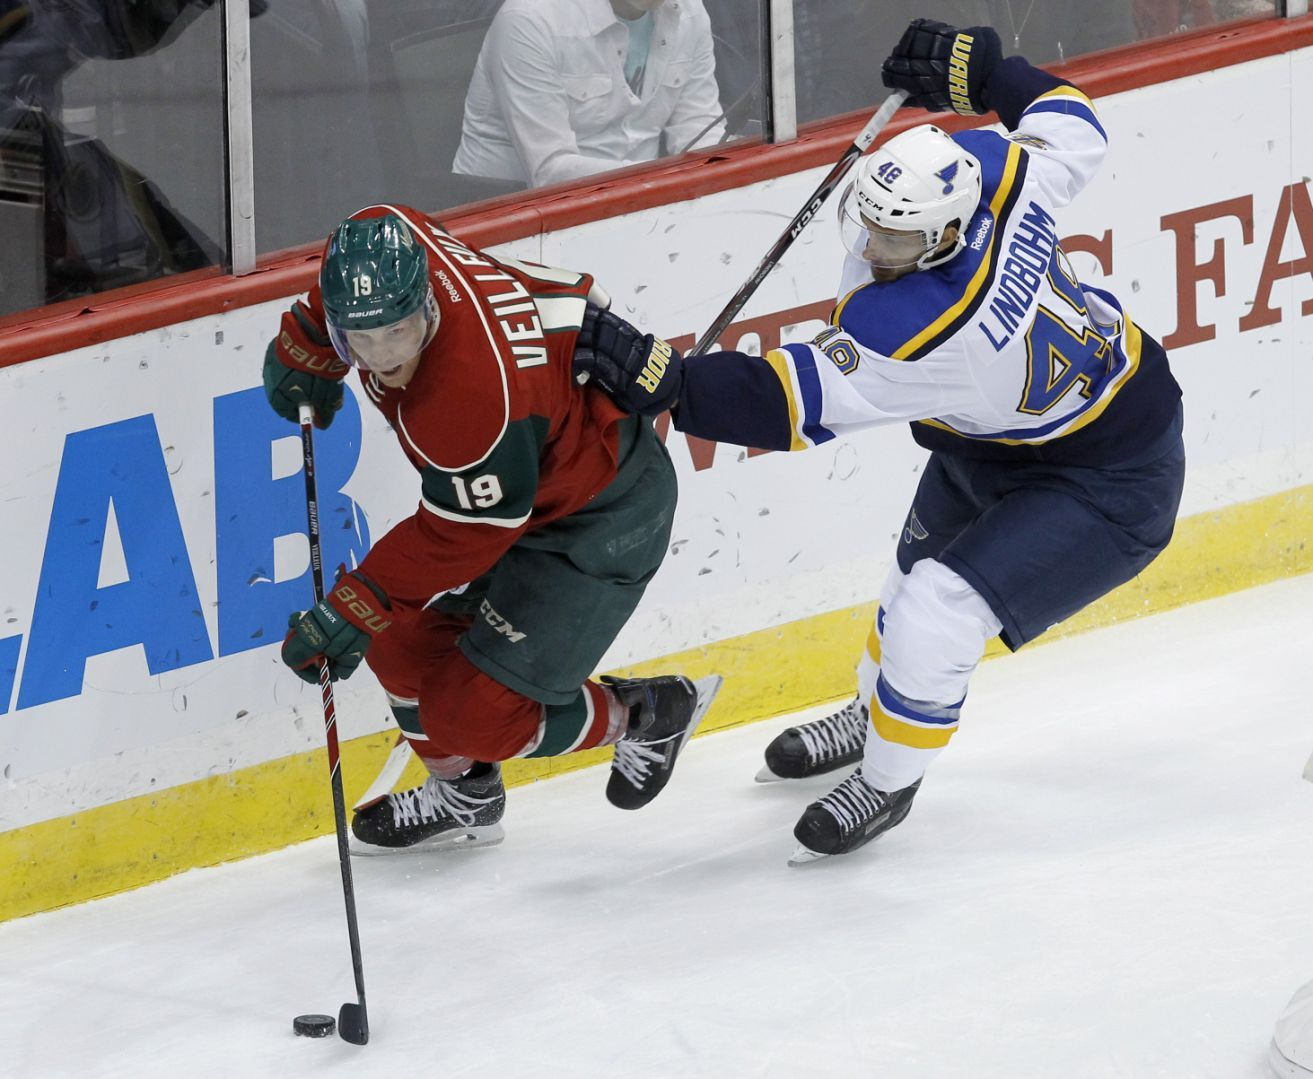 Blues recall Lindbohm; defenseman will play tonight